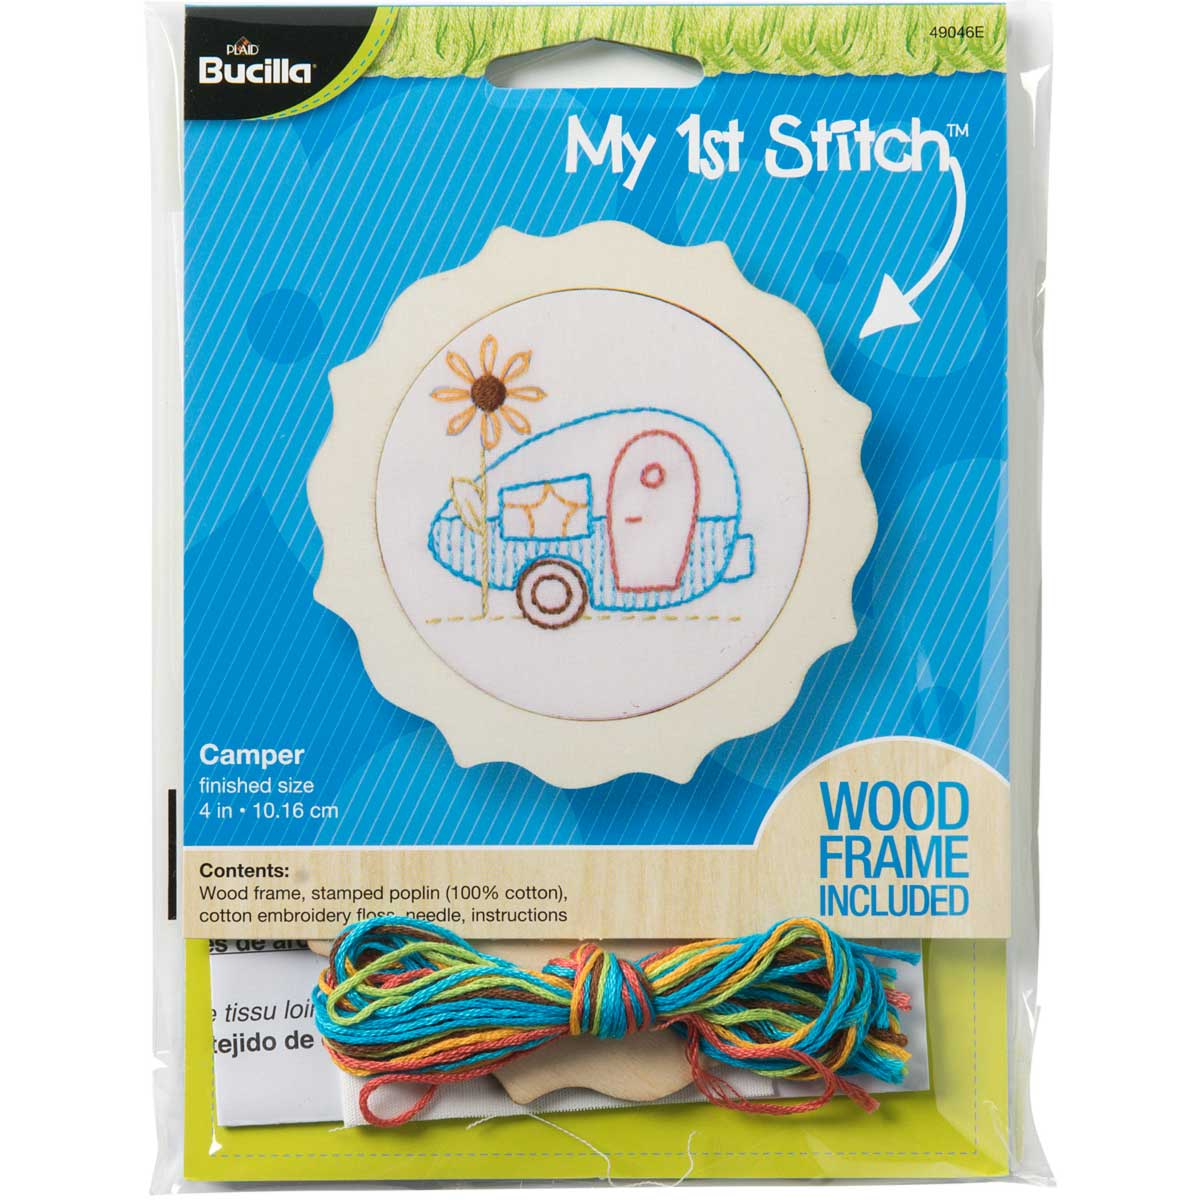 Bucilla ® My 1st Stitch™ - Stamped Embroidery Kits - Camper - 49046E